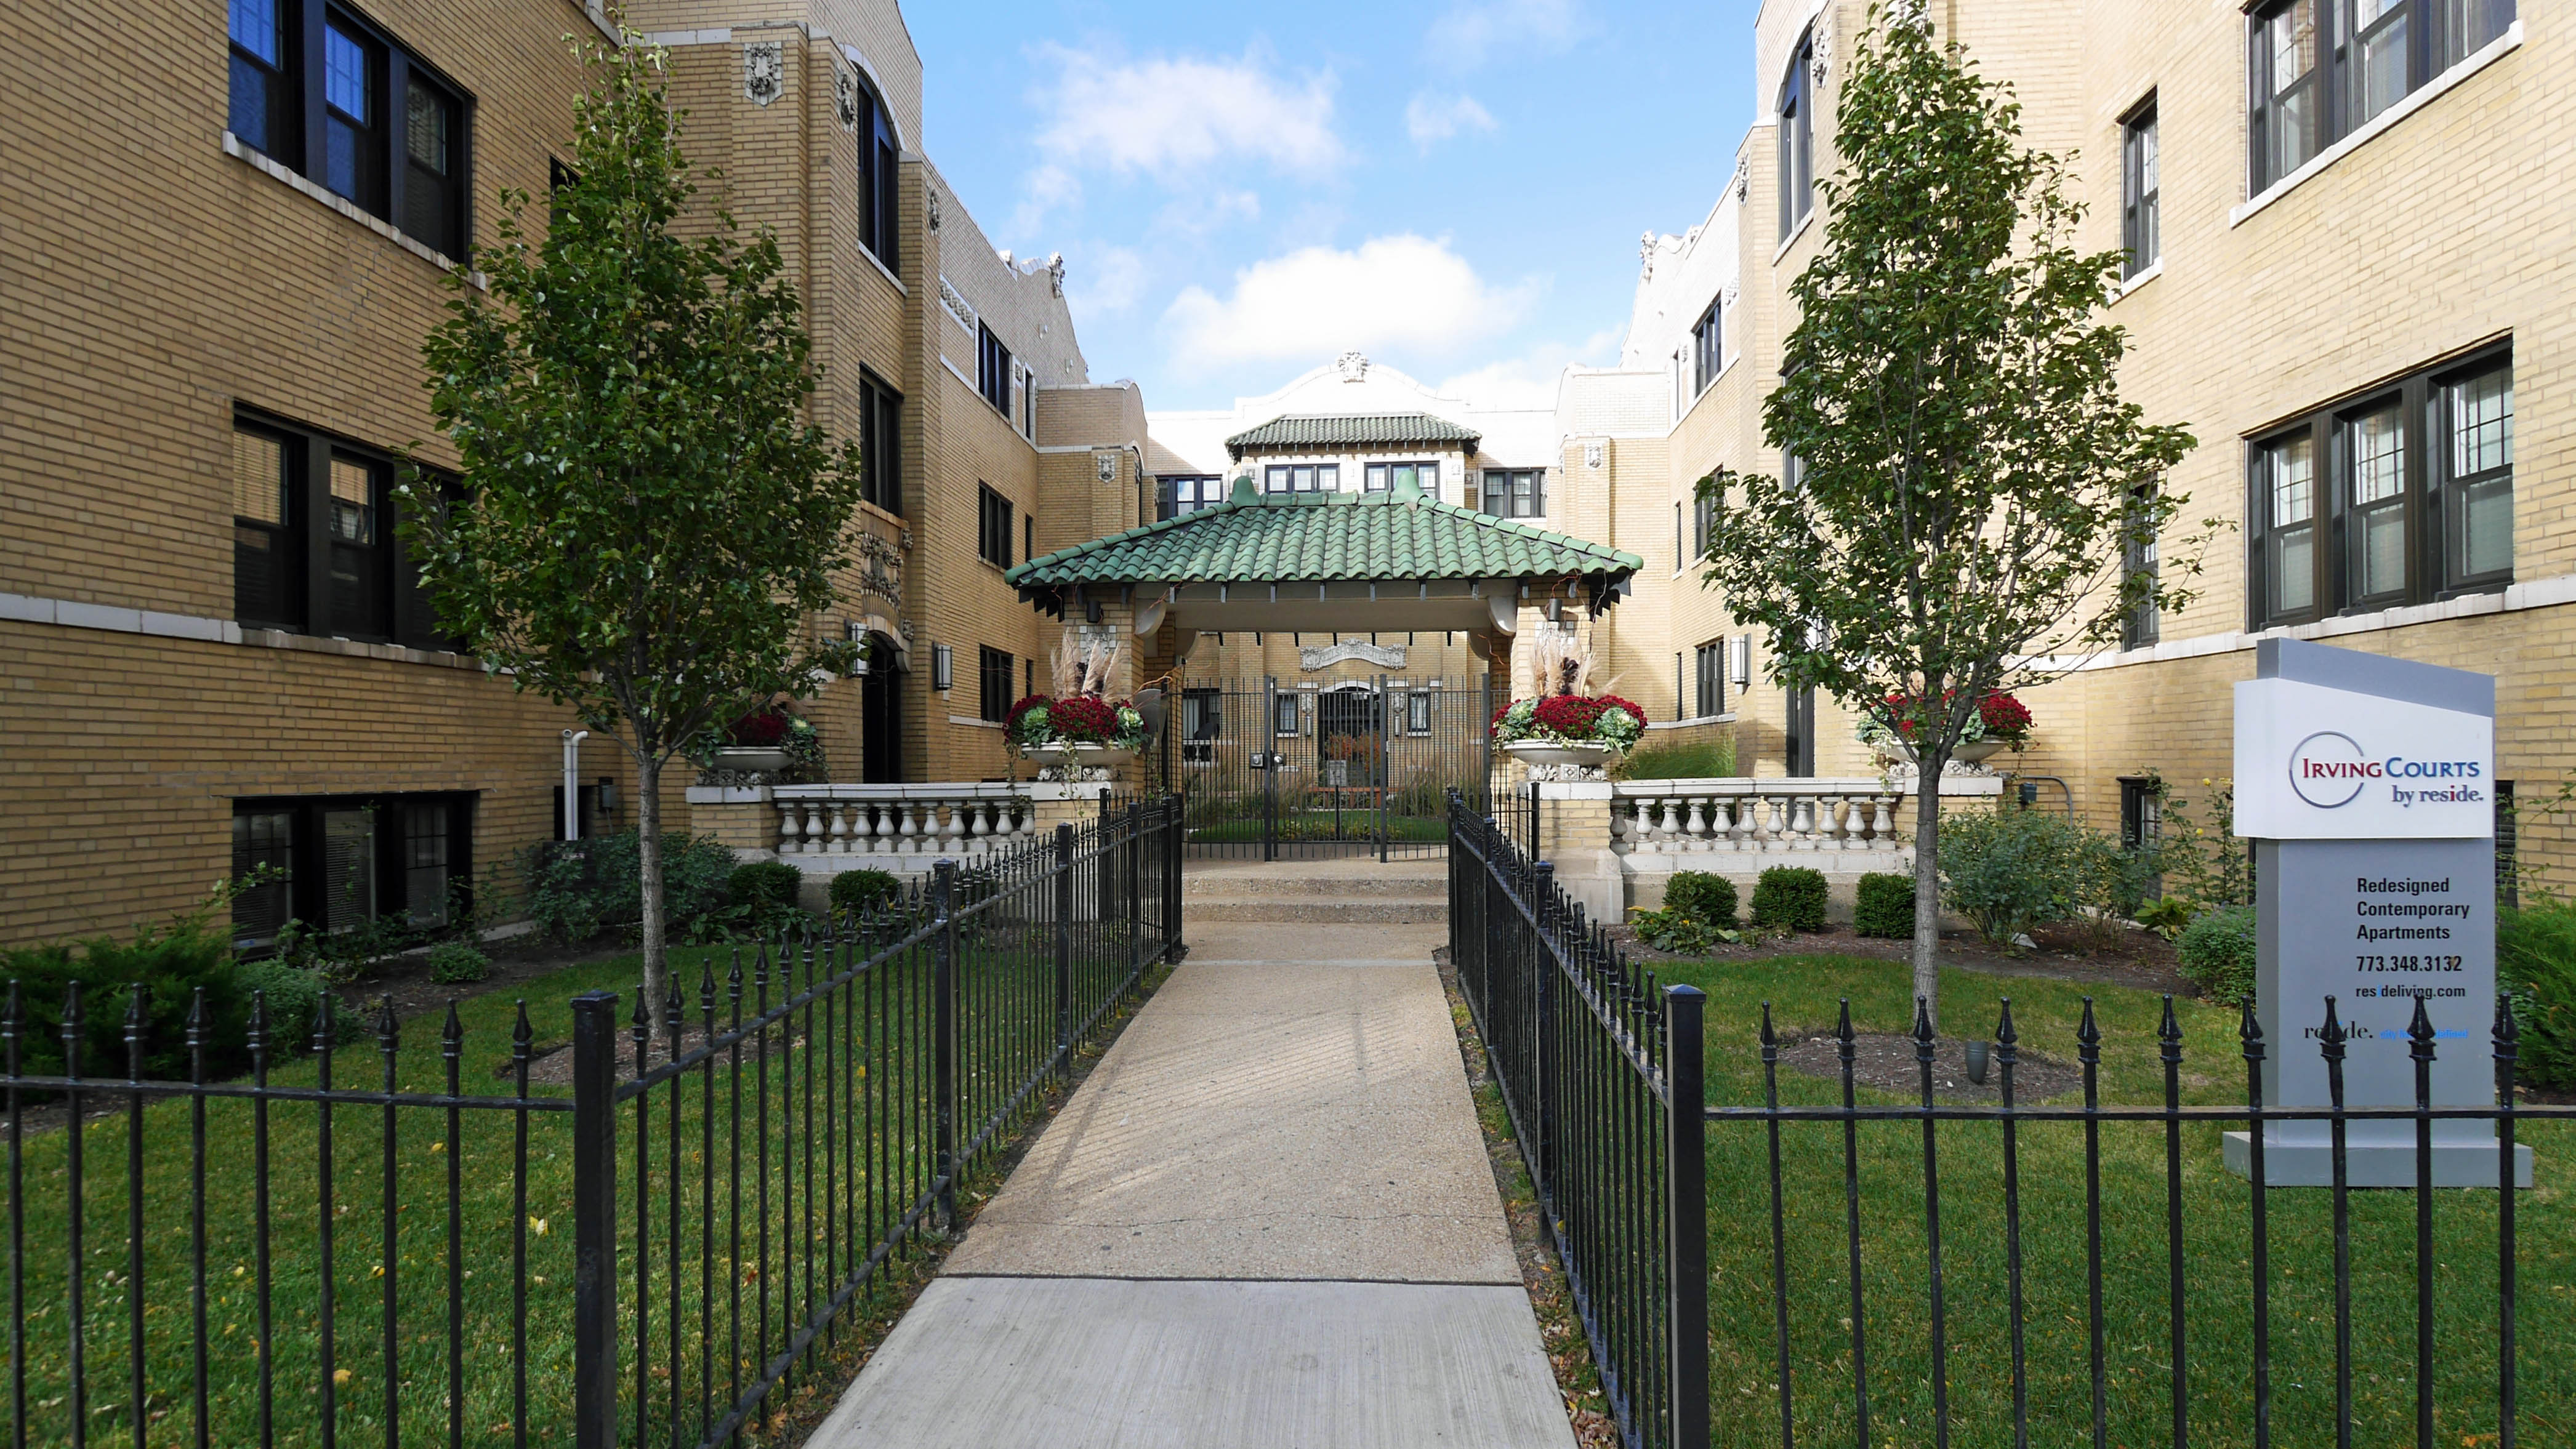 Irving courts apartments 718 56 w irving park rd for Irving hotel chicago